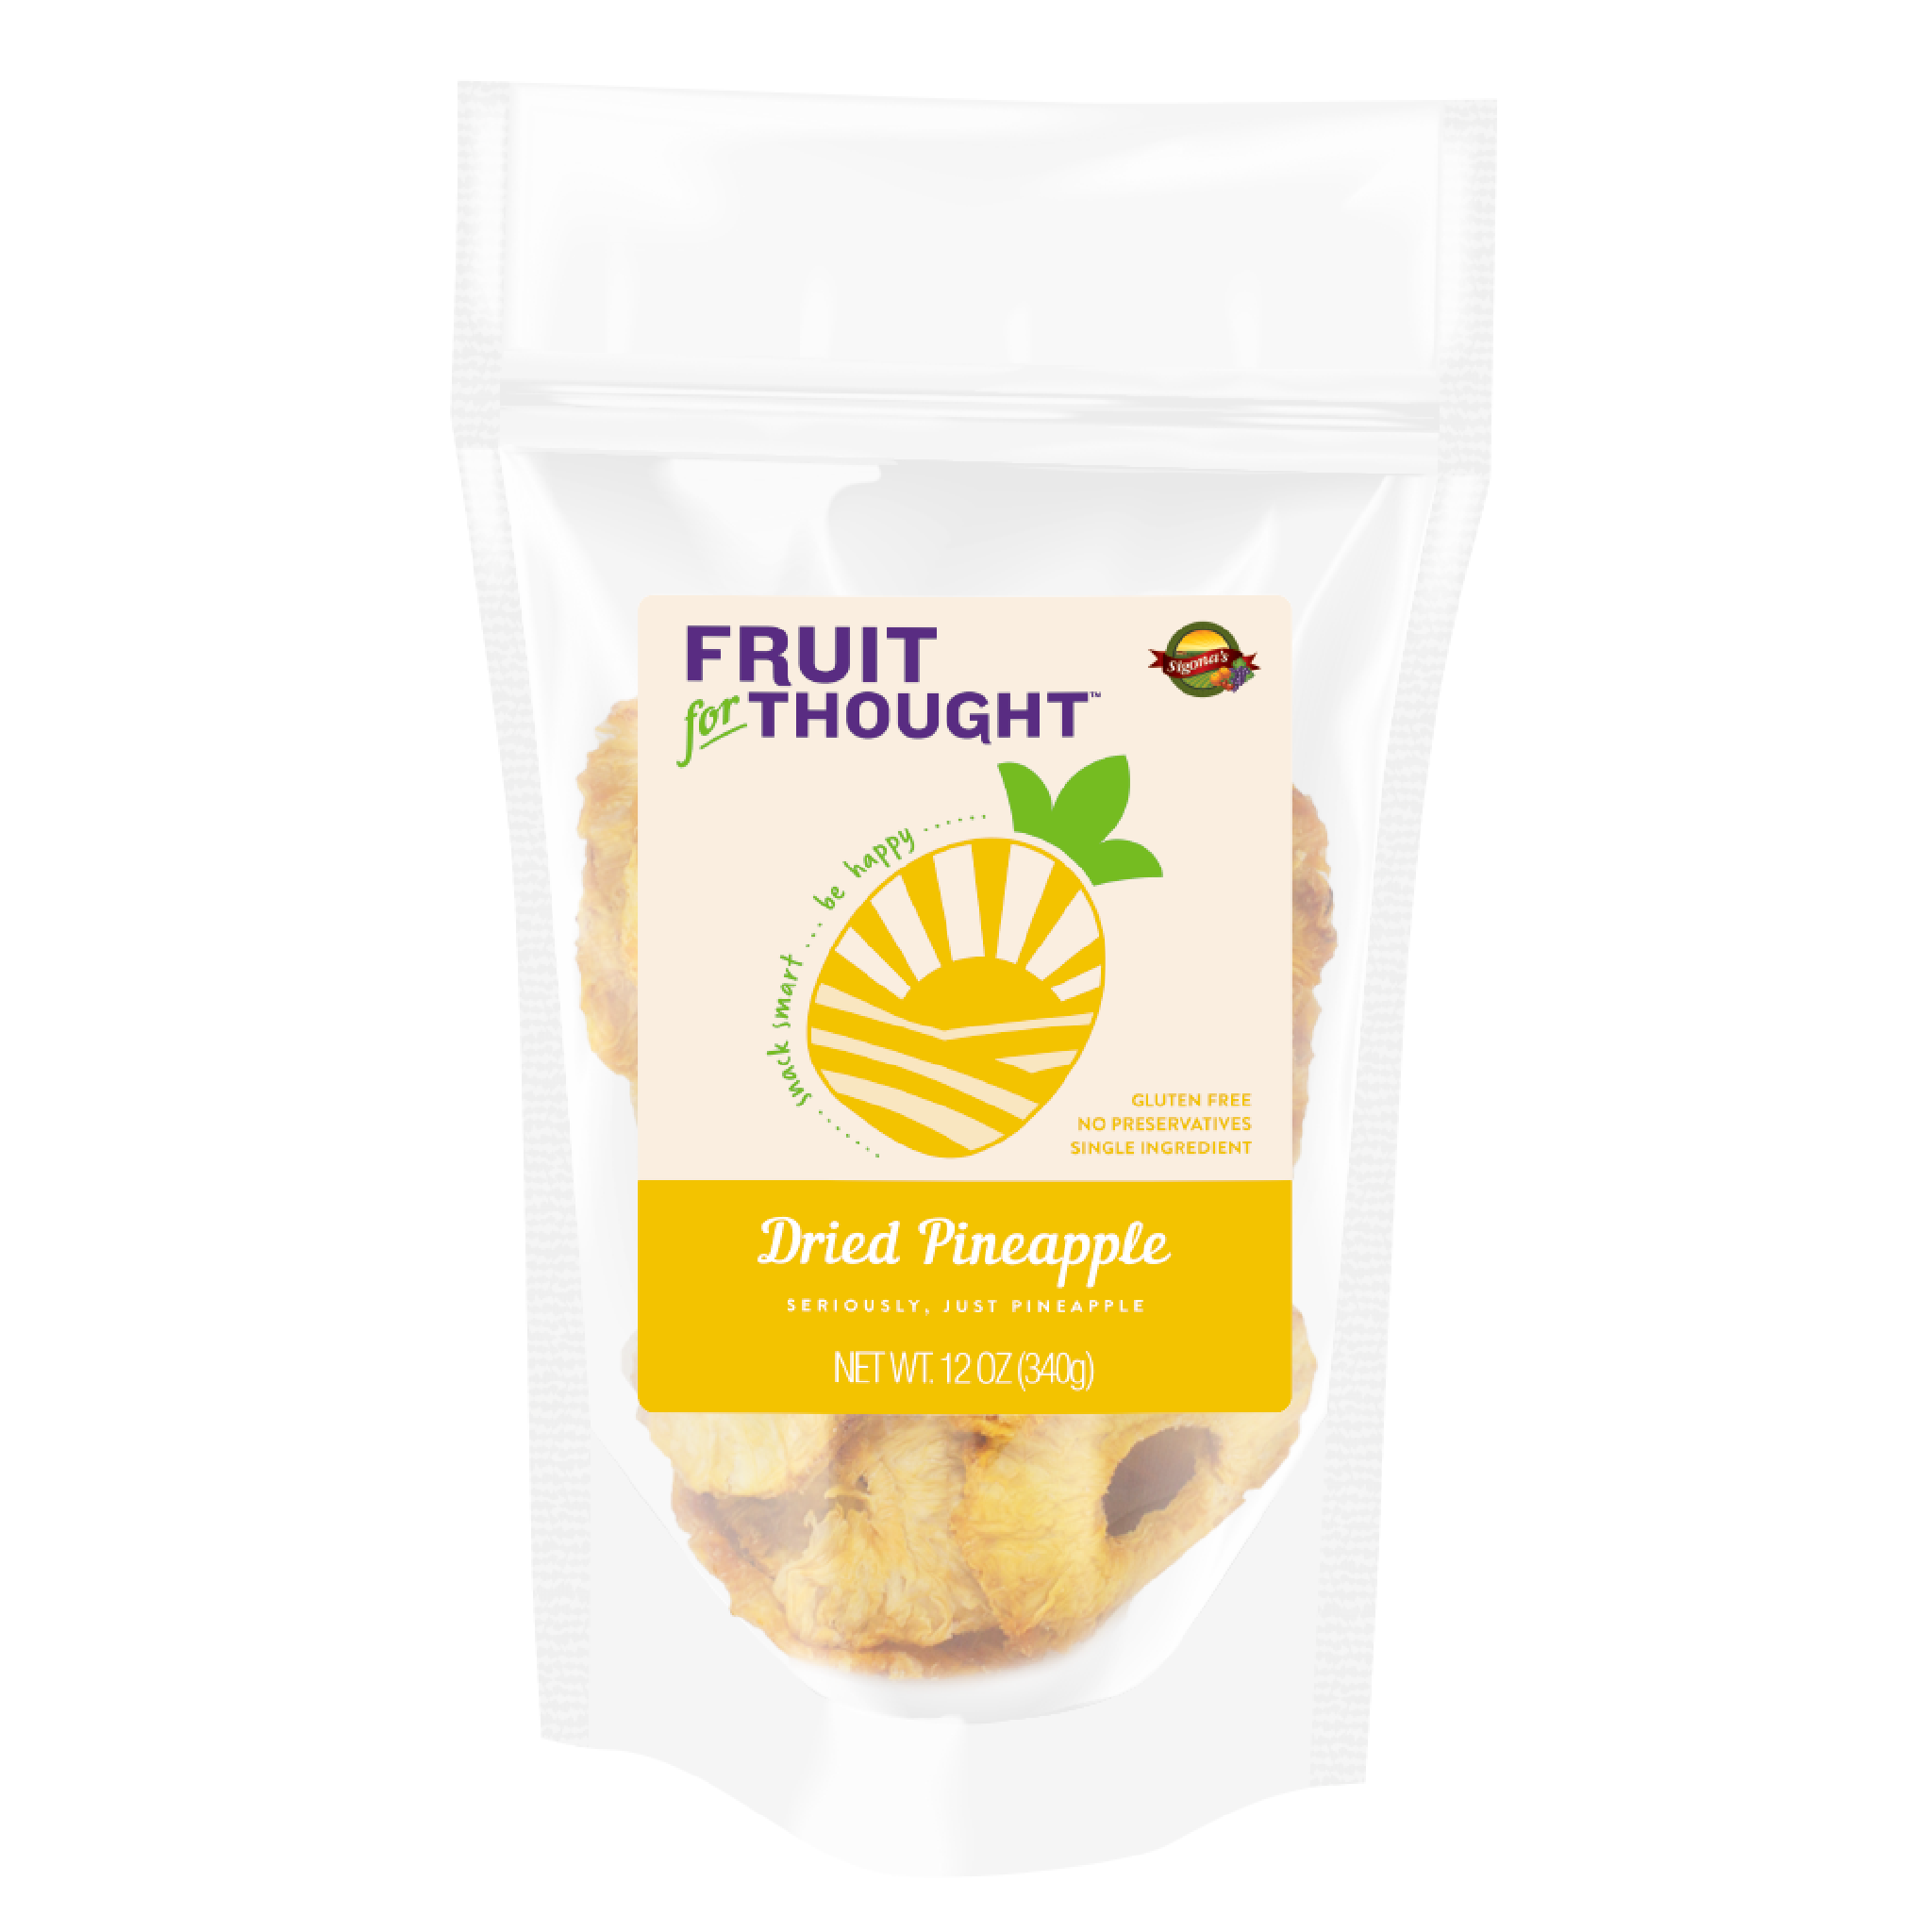 Fruit for Thought Dried Pineapple 12 oz